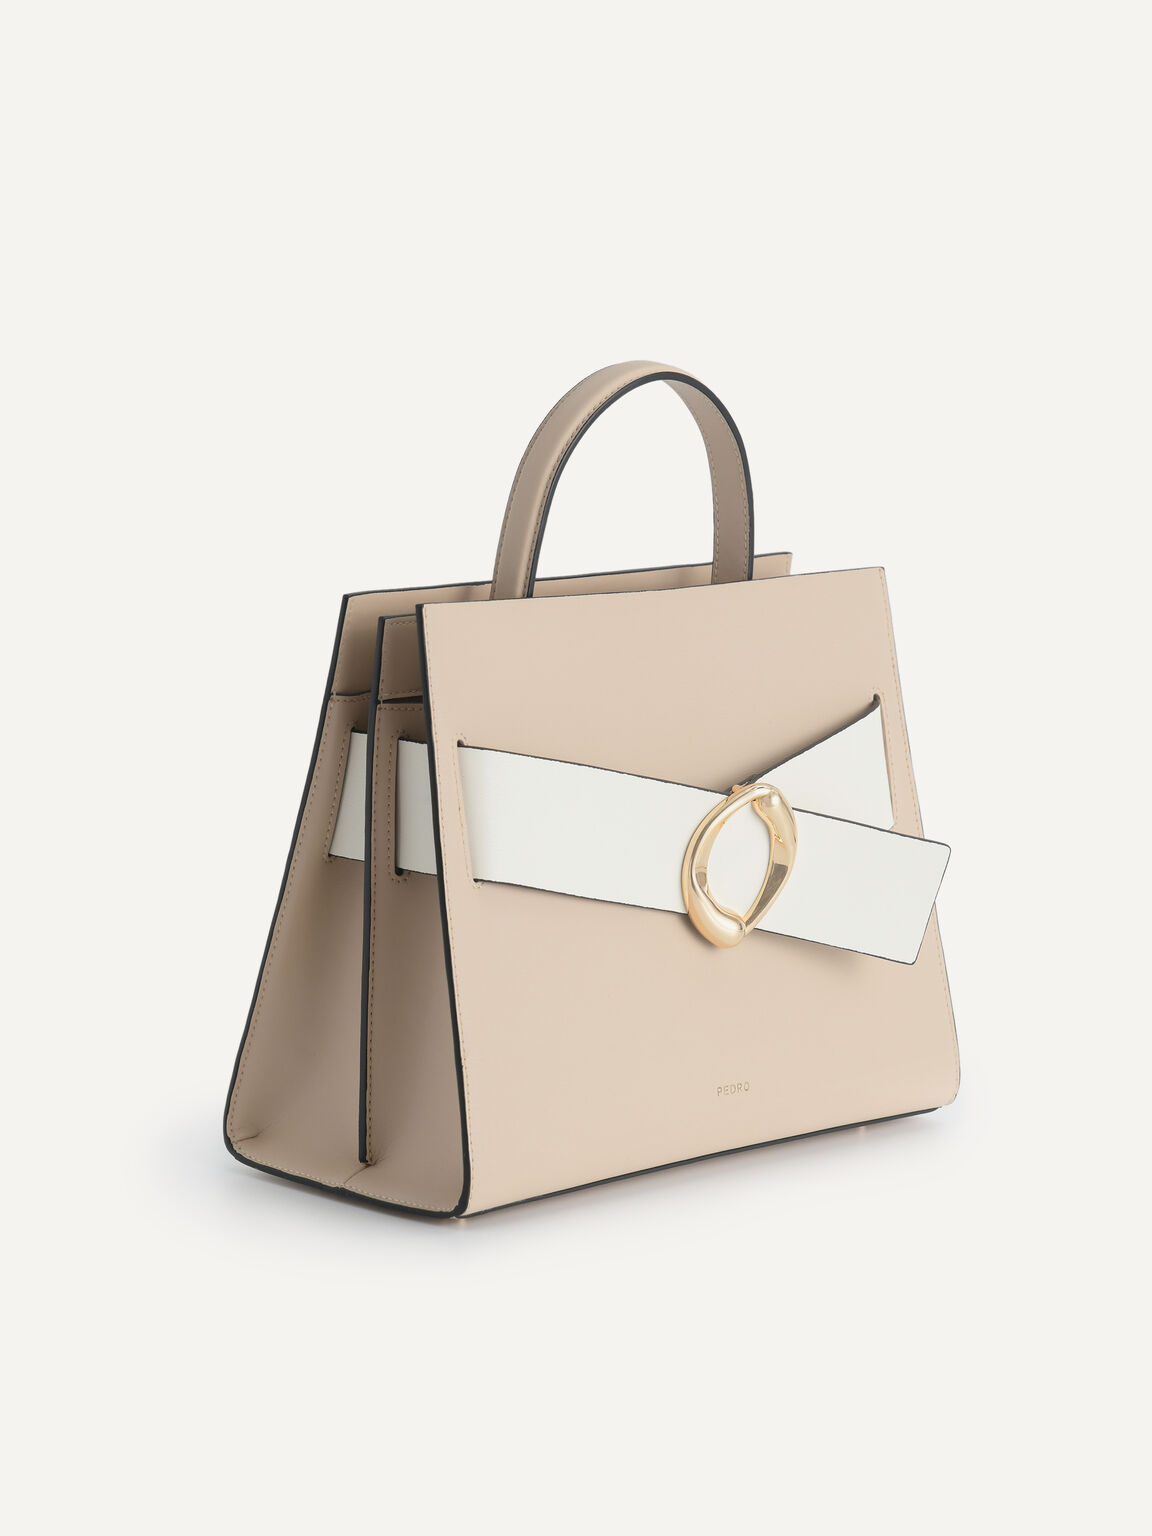 Structured Leather Top Handle Bag, Sand, hi-res